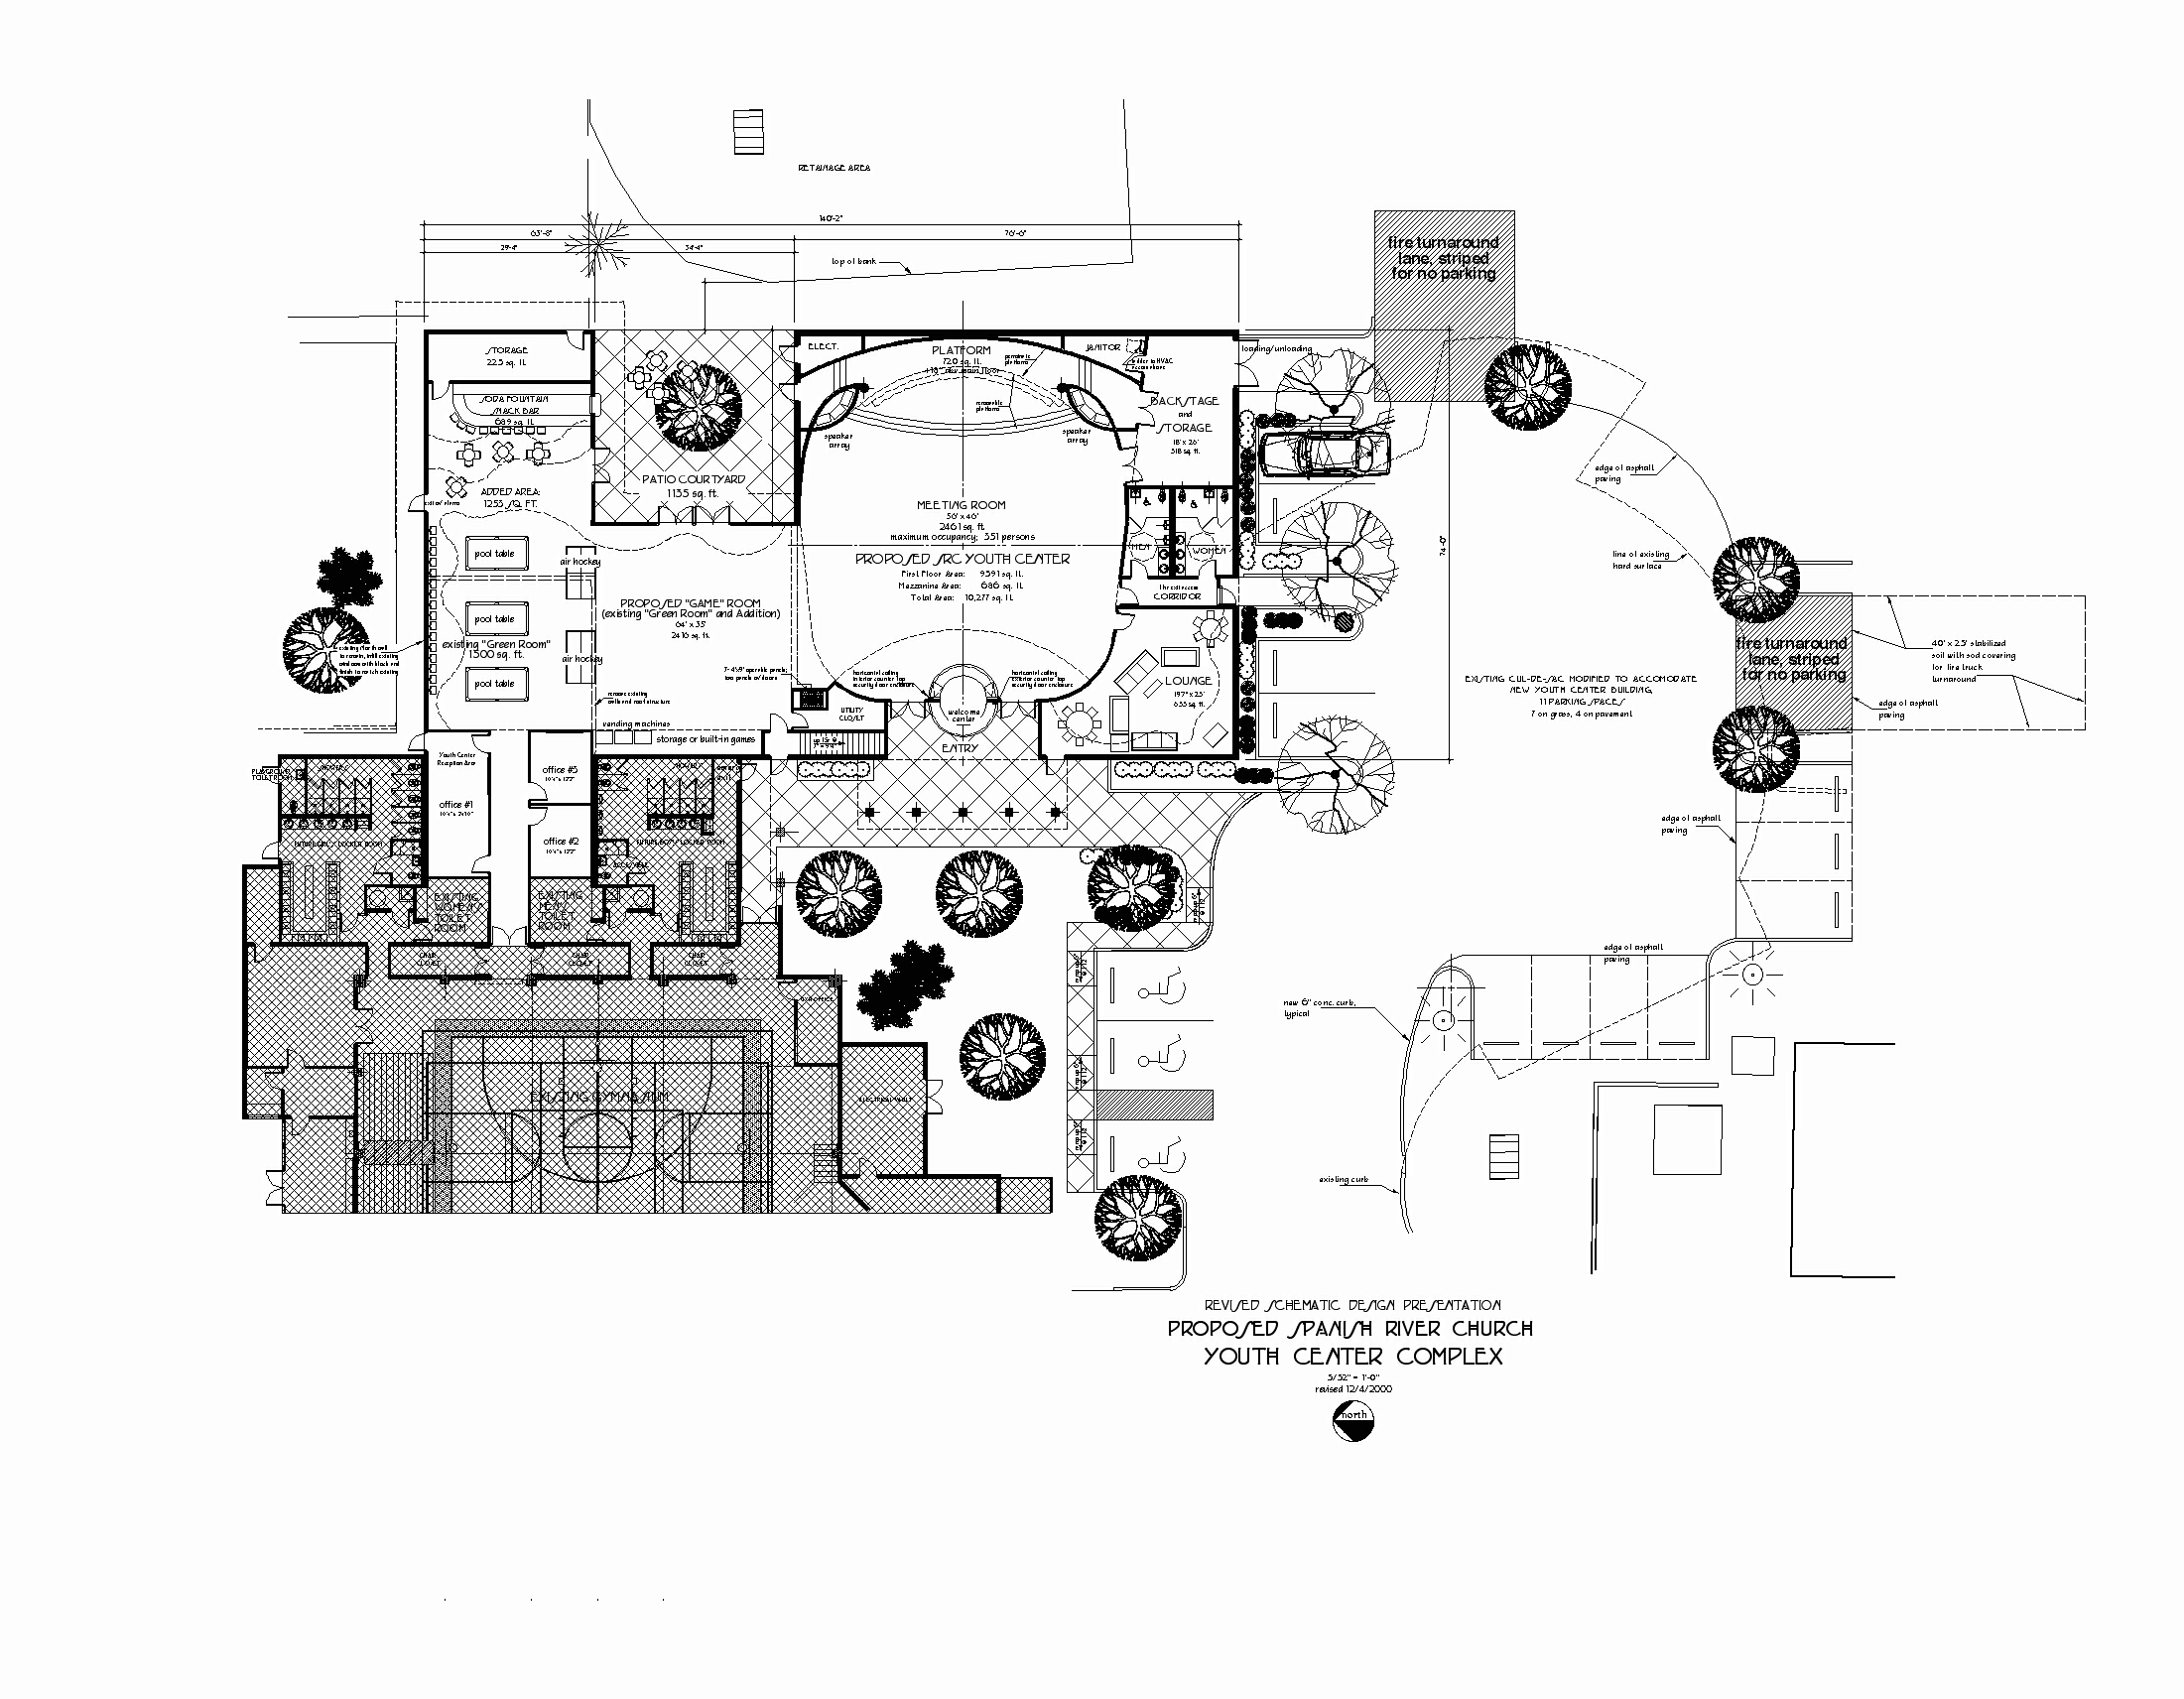 Spanish river church youth center romberger assoc architects pa floor plan jameslax Image collections